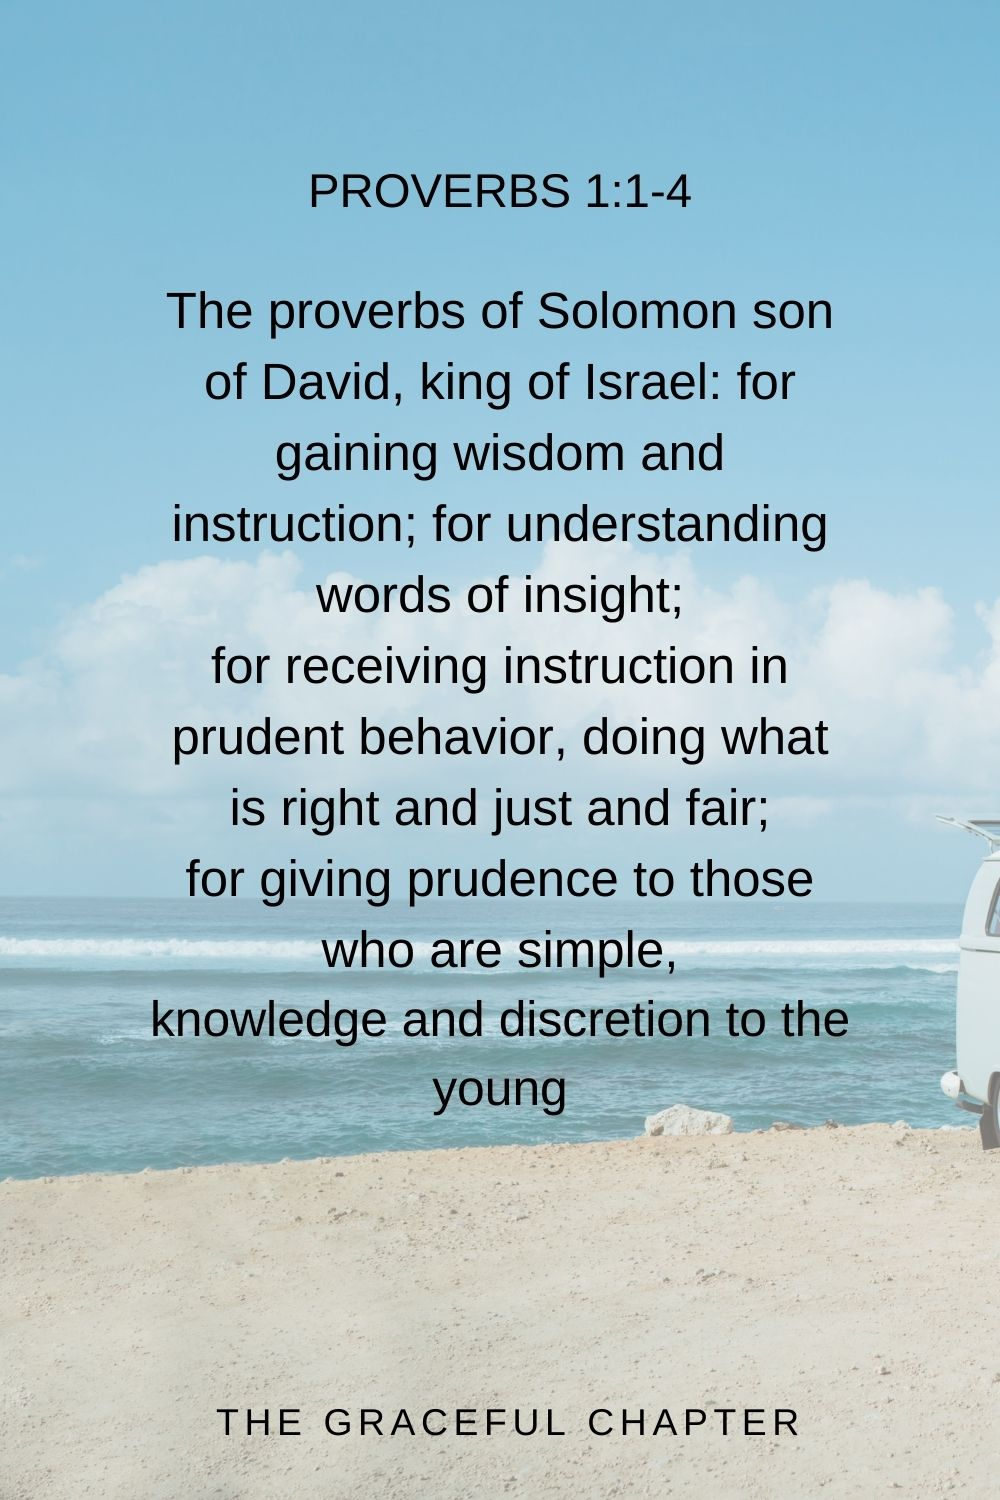 The proverbs of Solomon son of David, king of Israel: for gaining wisdom and instruction; for understanding words of insight; for receiving instruction in prudent behavior, doing what is right and just and fair; for giving prudence to those who are simple, knowledge and discretion to the young Proverbs 1:1-4